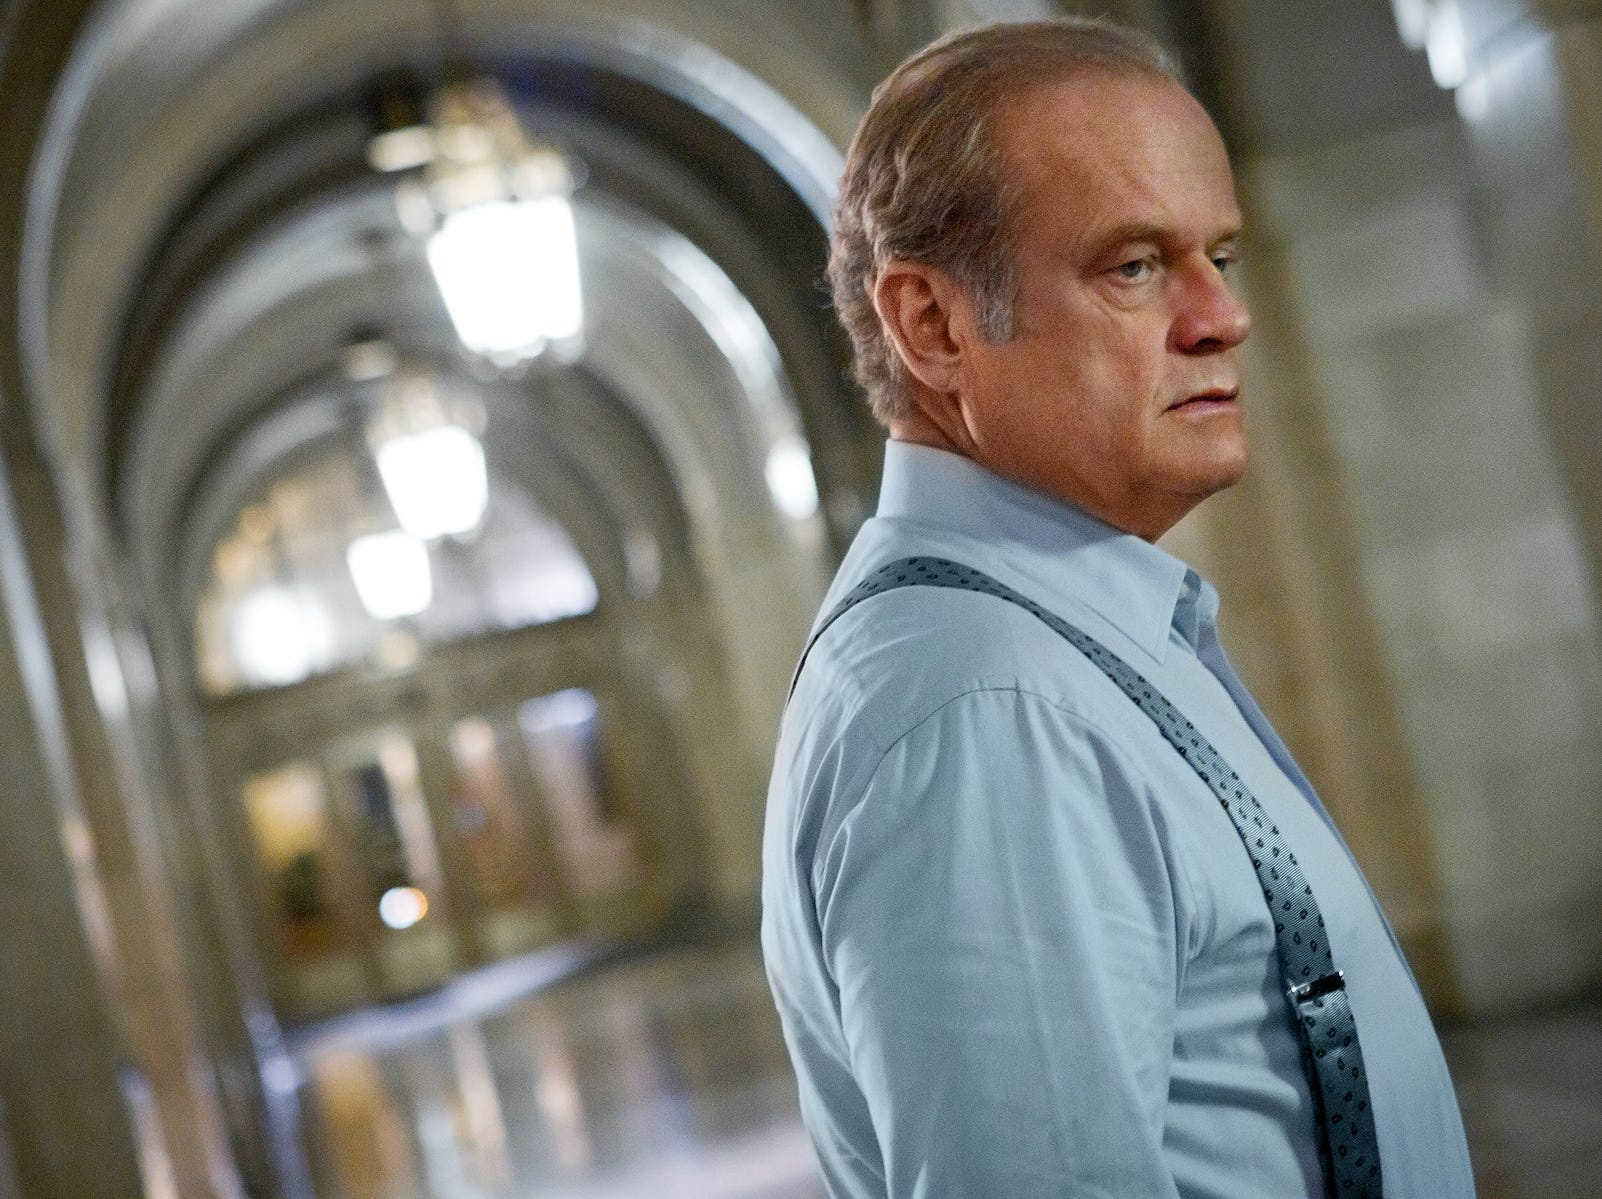 """Boss"" (Starz, 2011-12): Mayor Tom Kane (Kelsey Grammer)  tries to hide his recent diagnosis of a neurological disorder while running the city of Chicago."